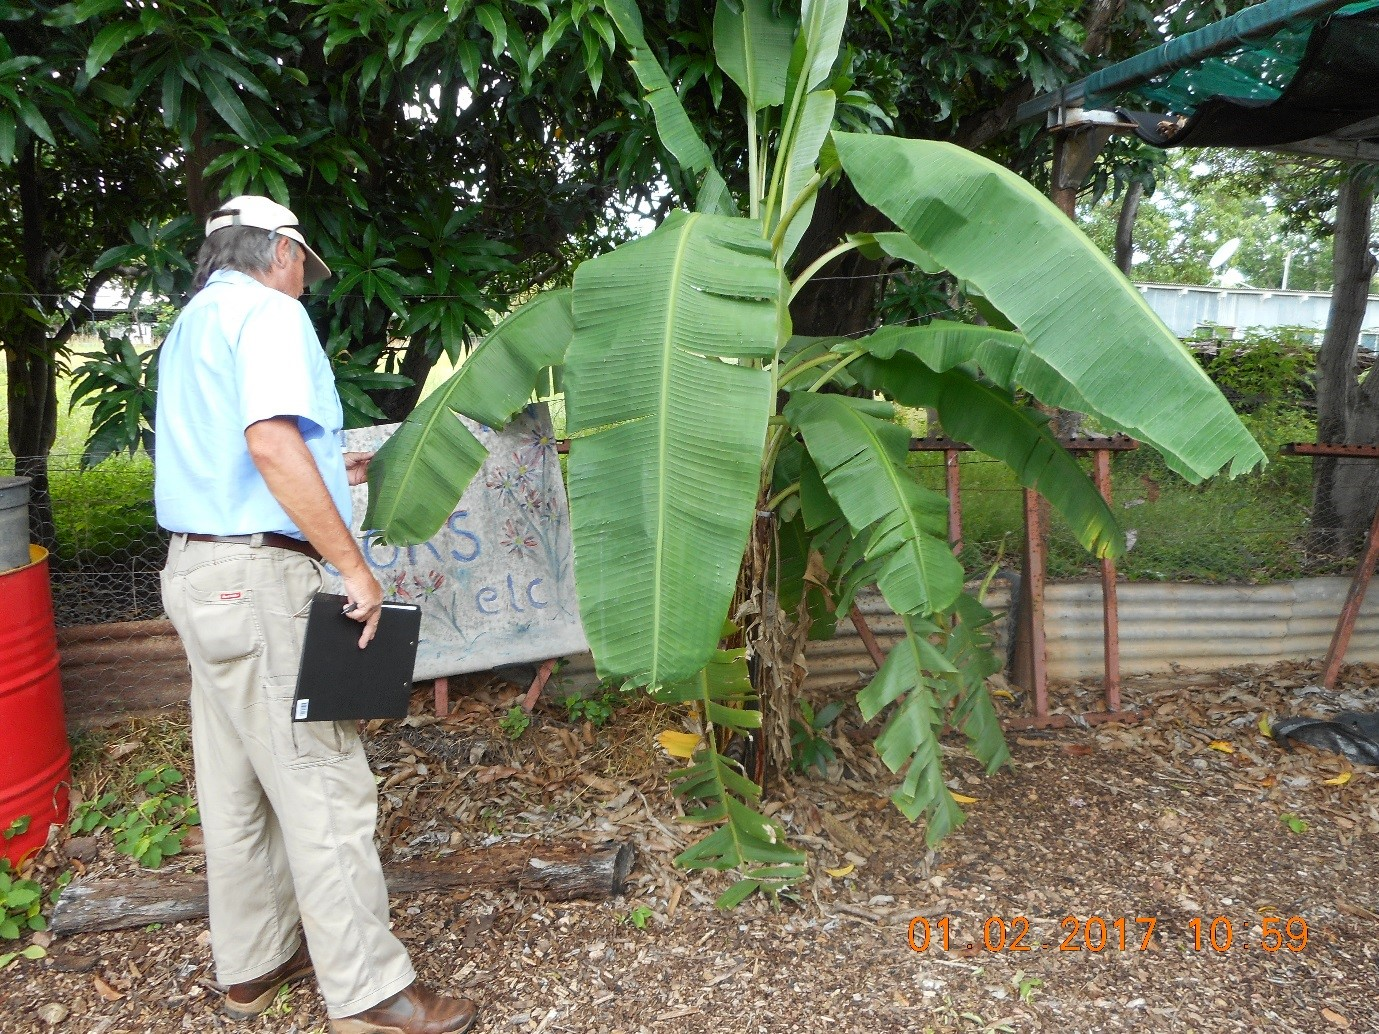 NT biosecurity officer inspecting a banana plant